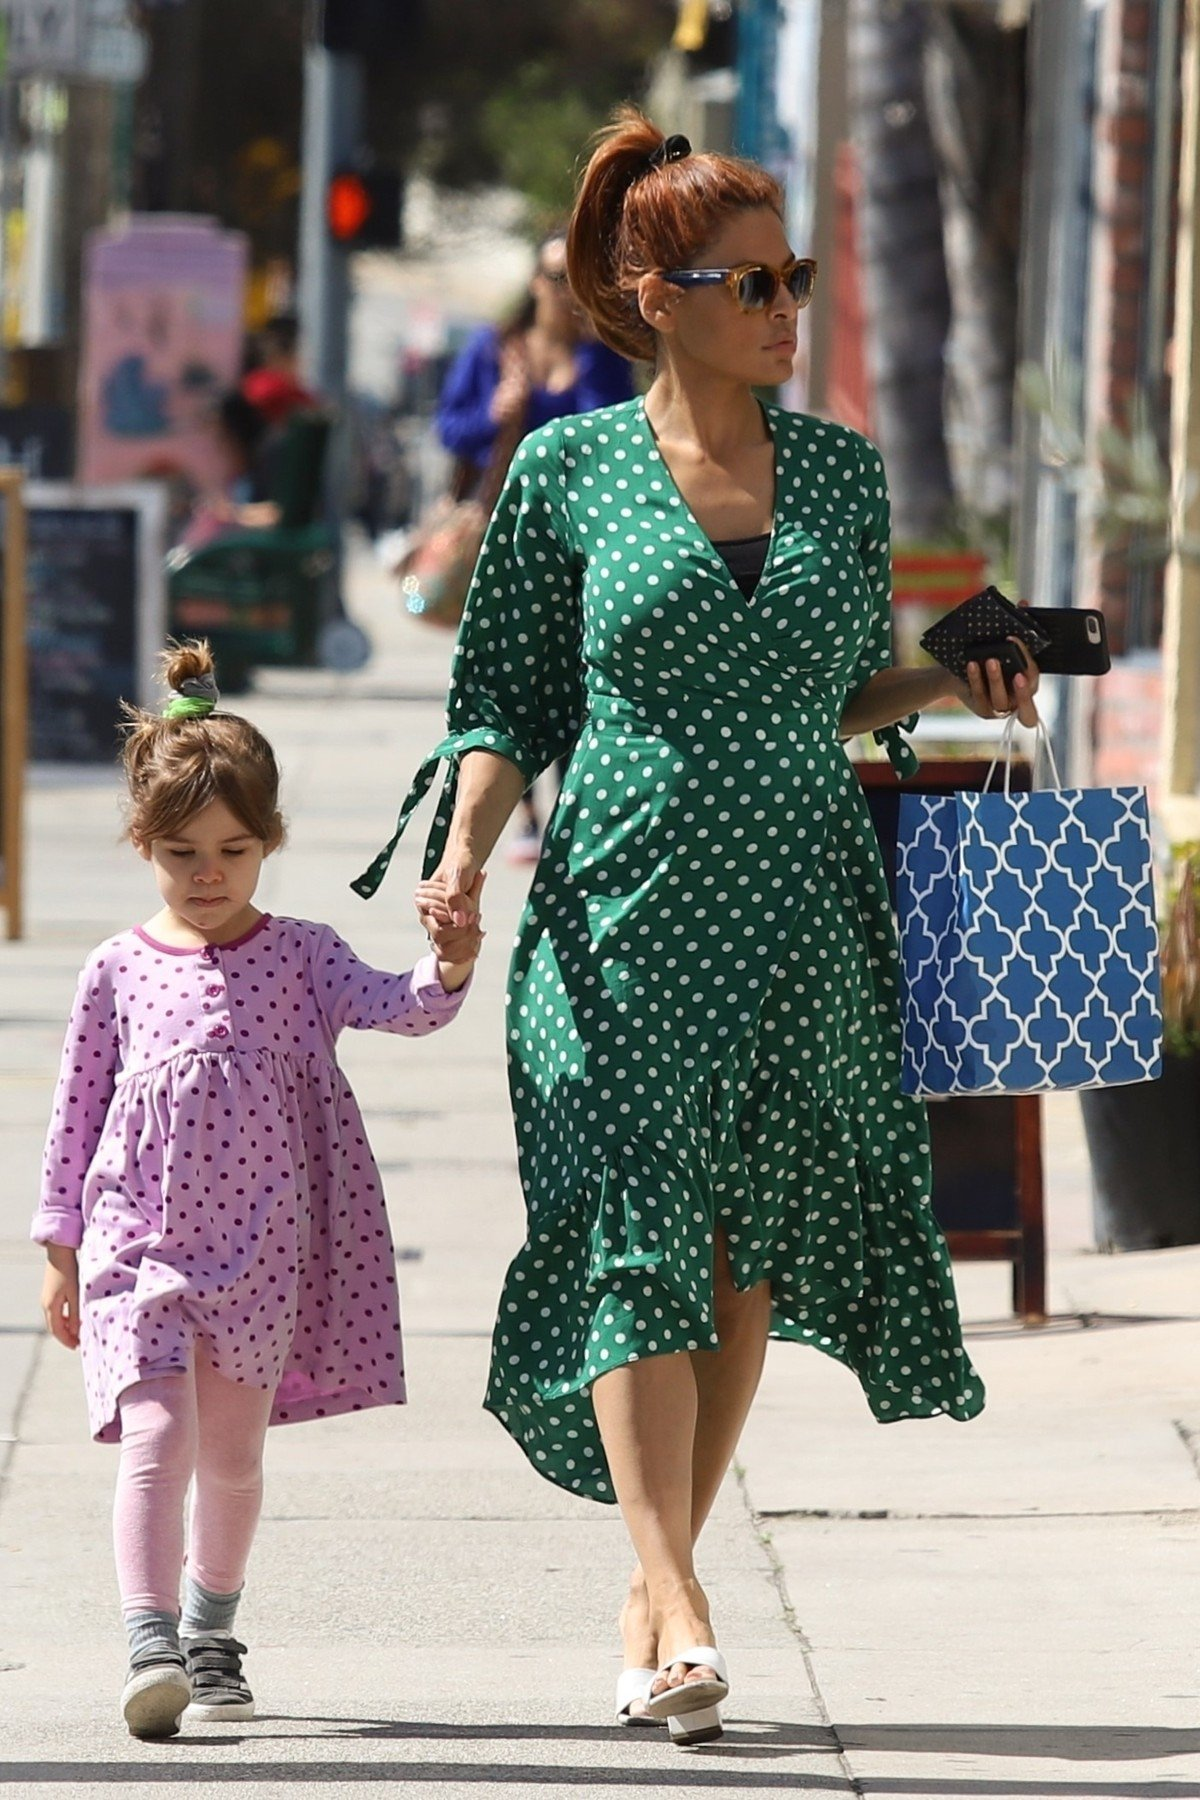 Hollywood, CA  - *EXCLUSIVE*  - Actress Eva Mendes takes her eldest daughter Esmeralda Gosling out to a birthday party in Hollywood. The duo step out to the party wearing polka dotted dresses, Eva's is green and Esmeralda's pink.  Pictured: Eva Mendes    *UK Clients - Pictures Containing Children Please Pixelate Face Prior To Publication*, Image: 420380077, License: Rights-managed, Restrictions: , Model Release: no, Credit line: Profimedia, Backgrid USA